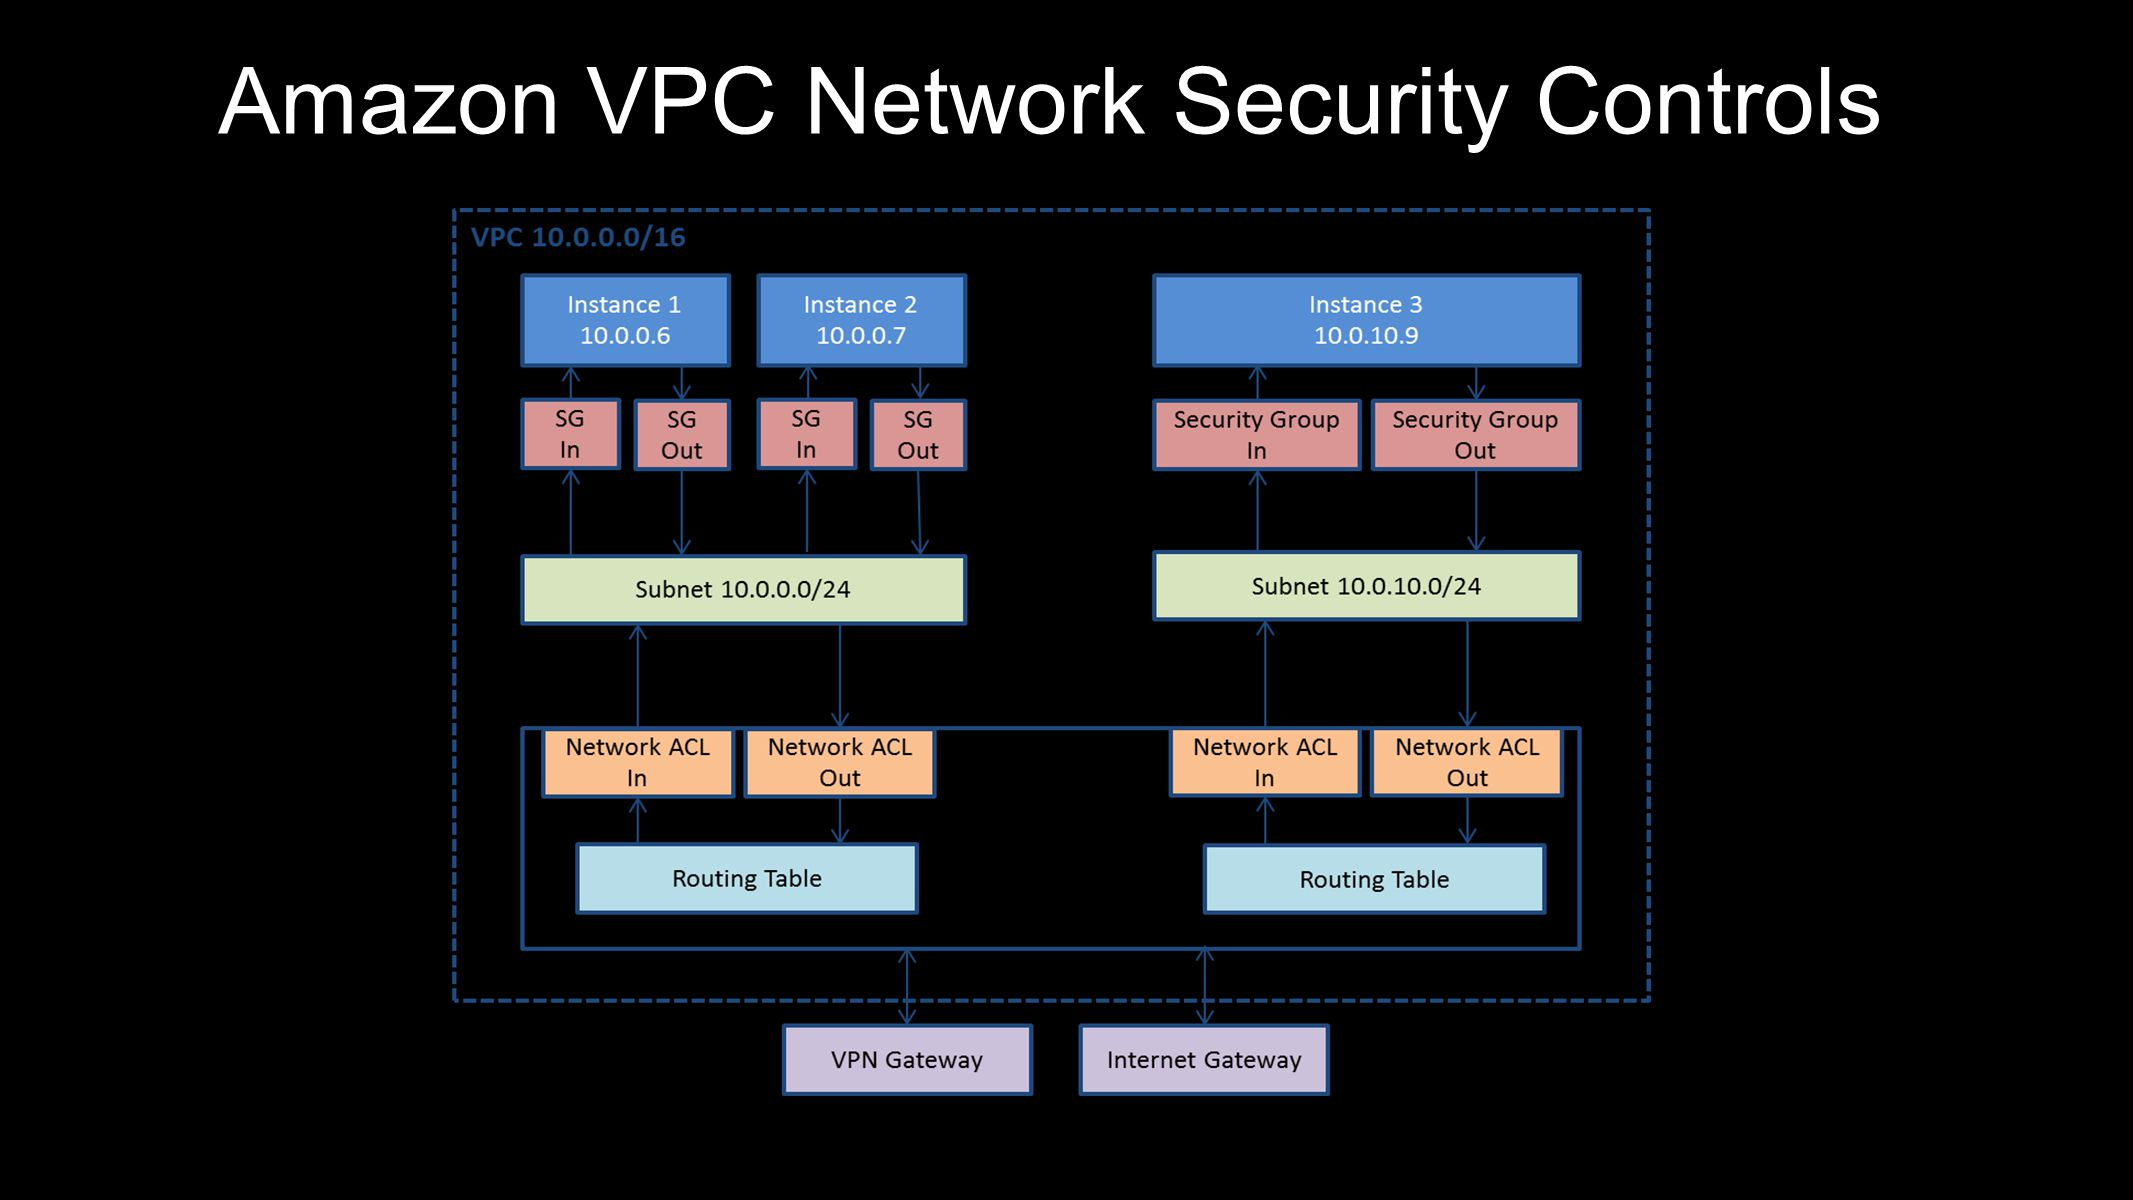 Amazon VPC Network Security Controls